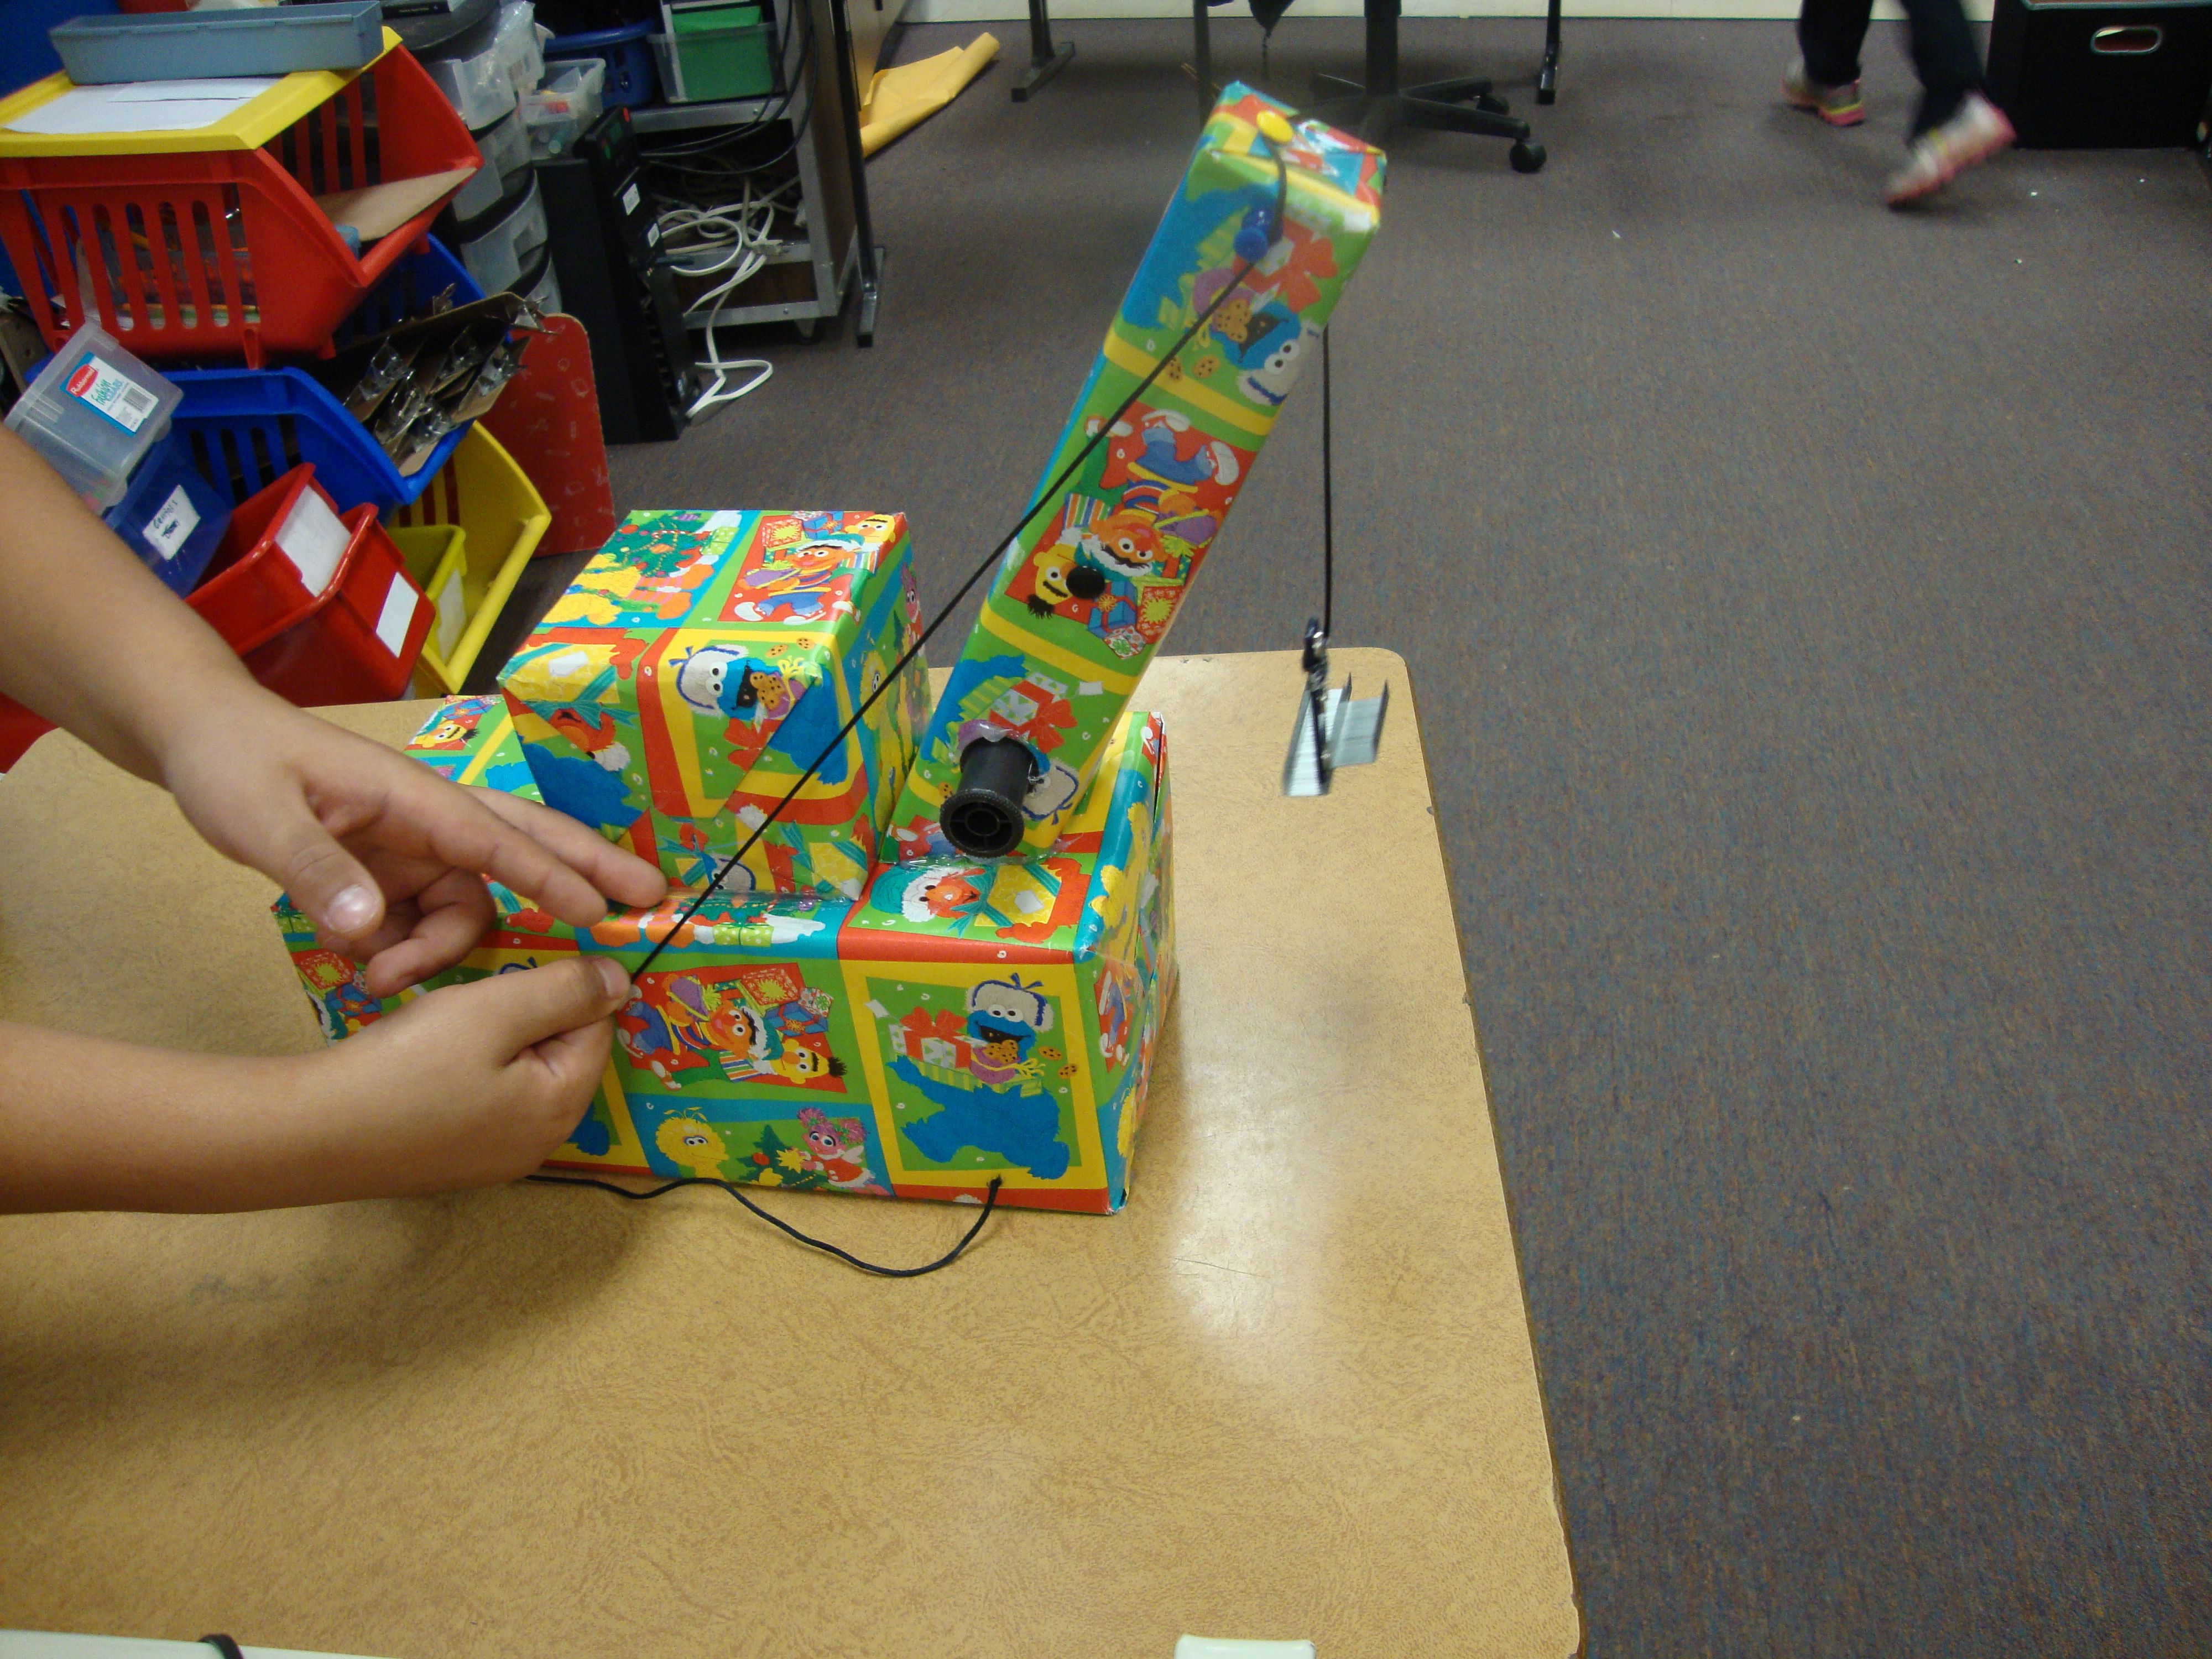 Crane uses a pulley. Student used gift boxes, push pins ...